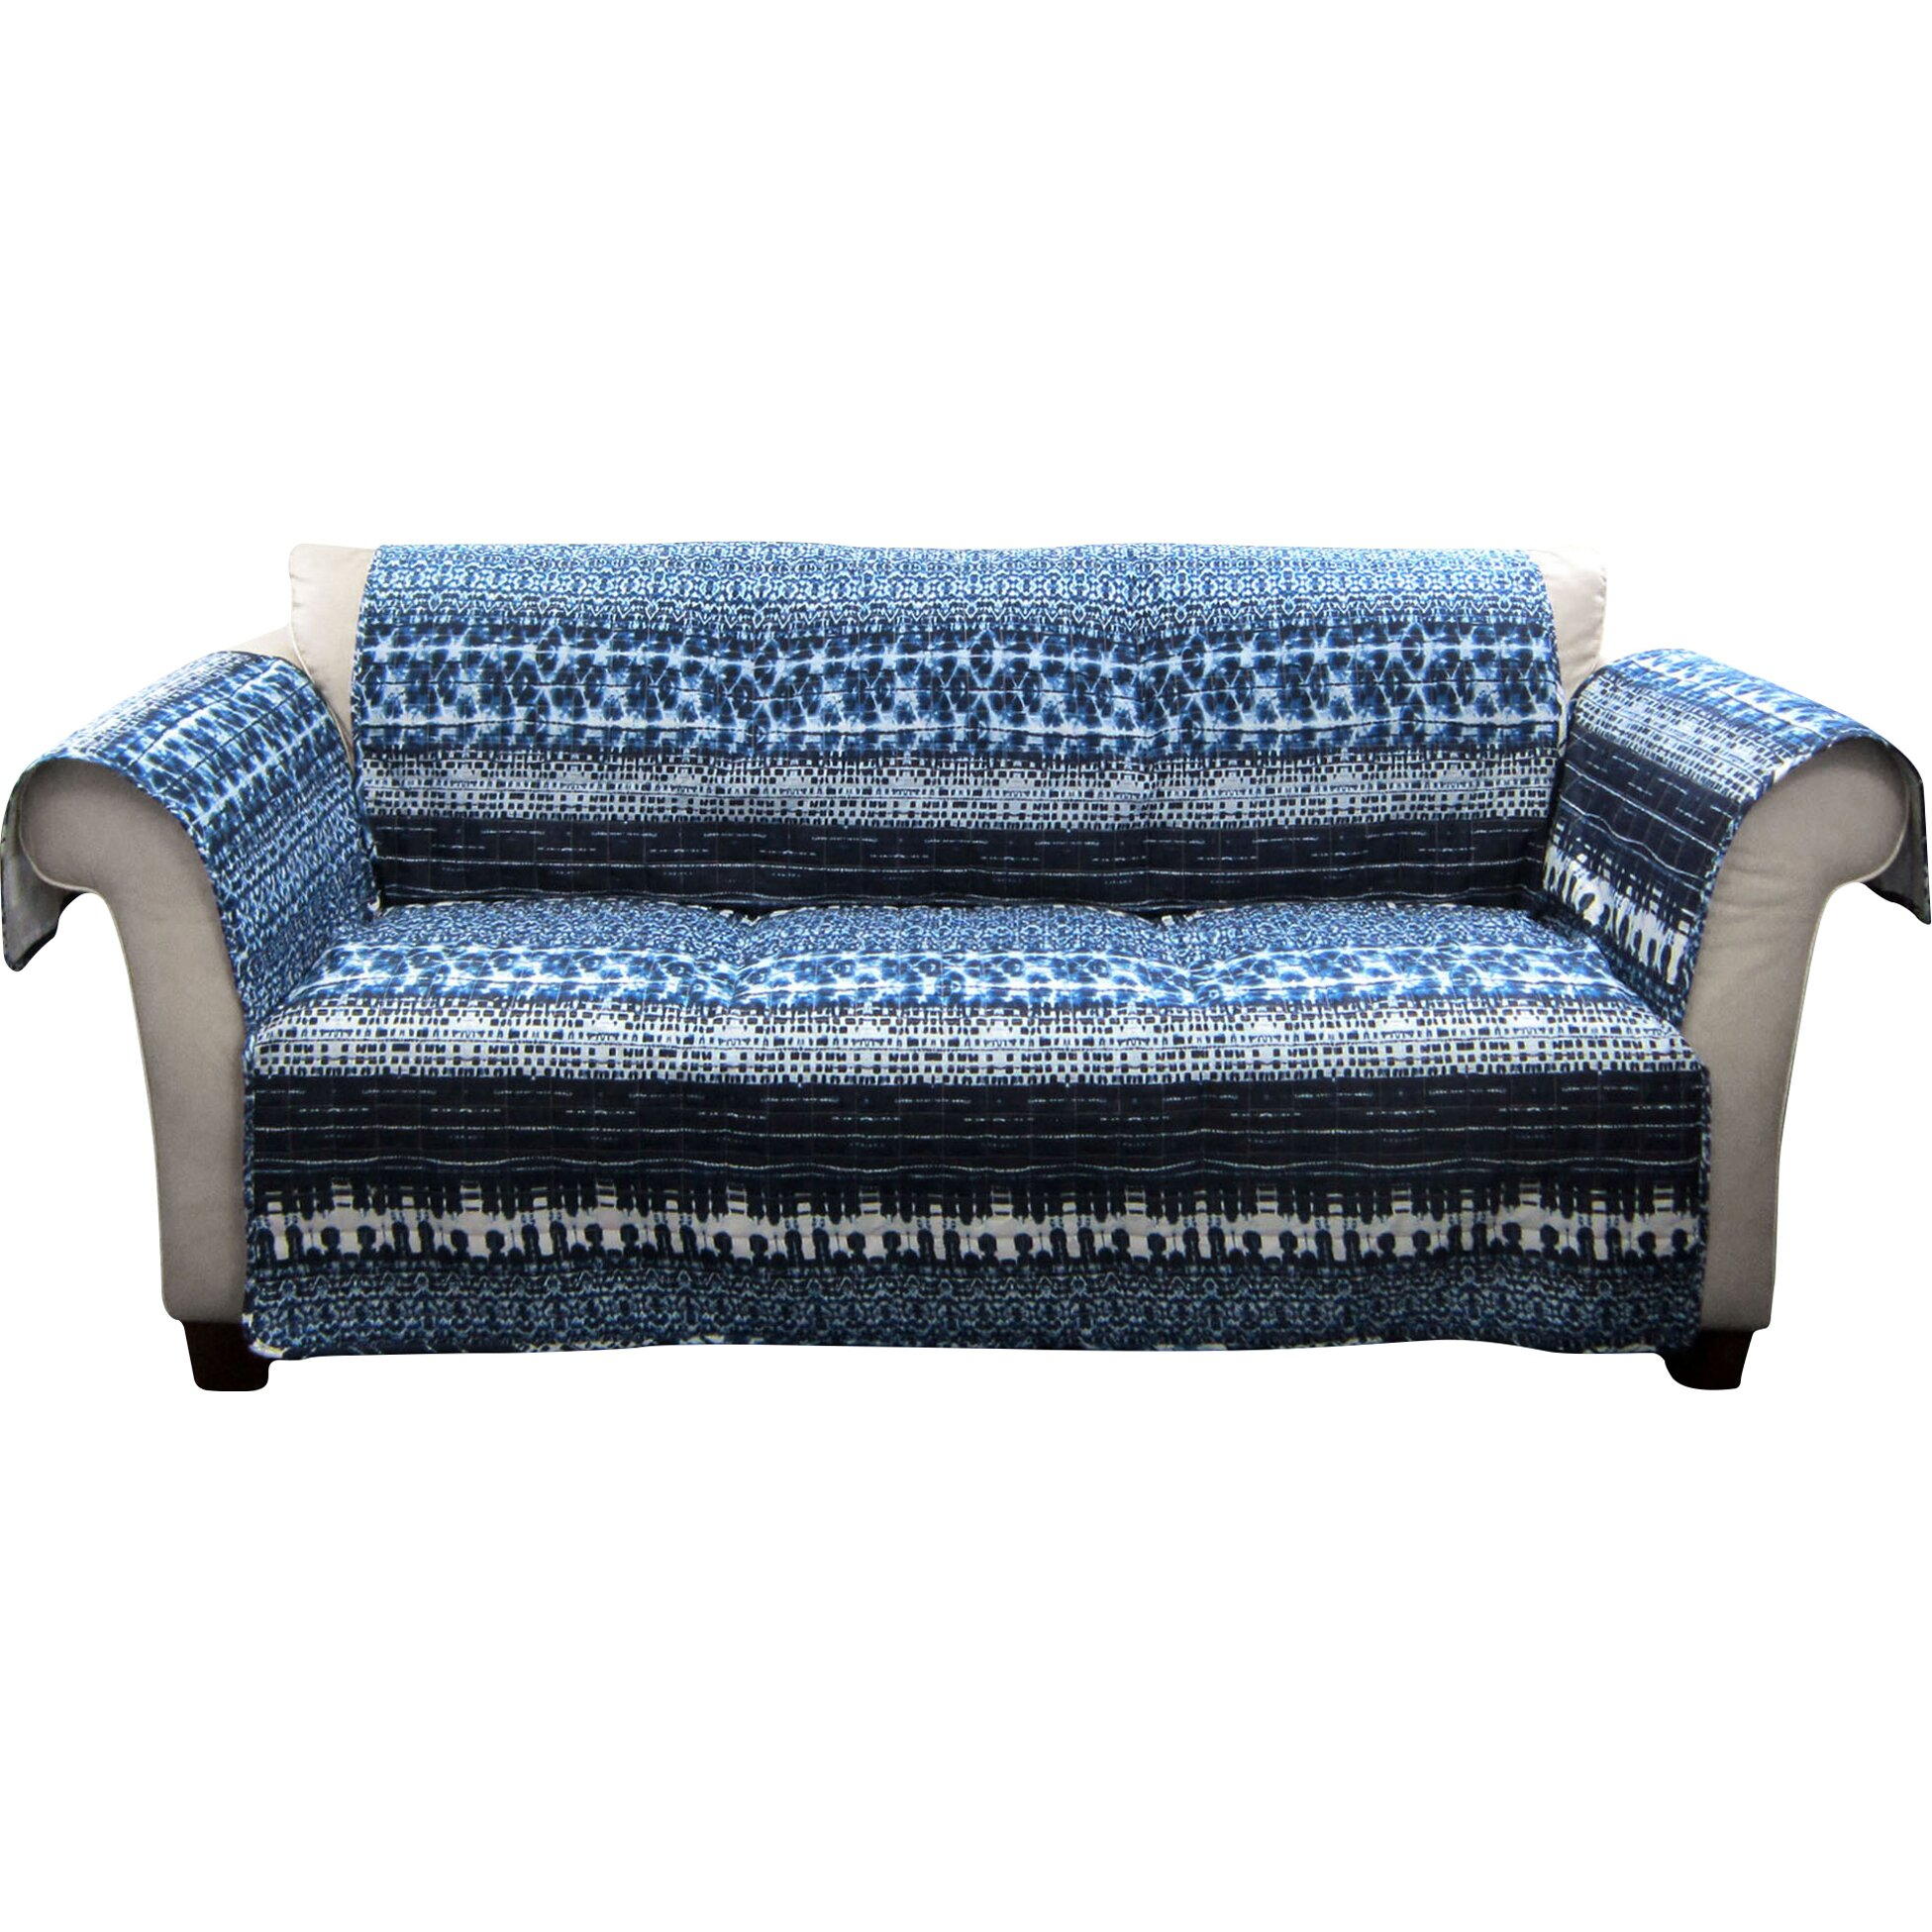 Lush decor lambert tie dye sofa protector reviews wayfair for Furniture 2 day shipping